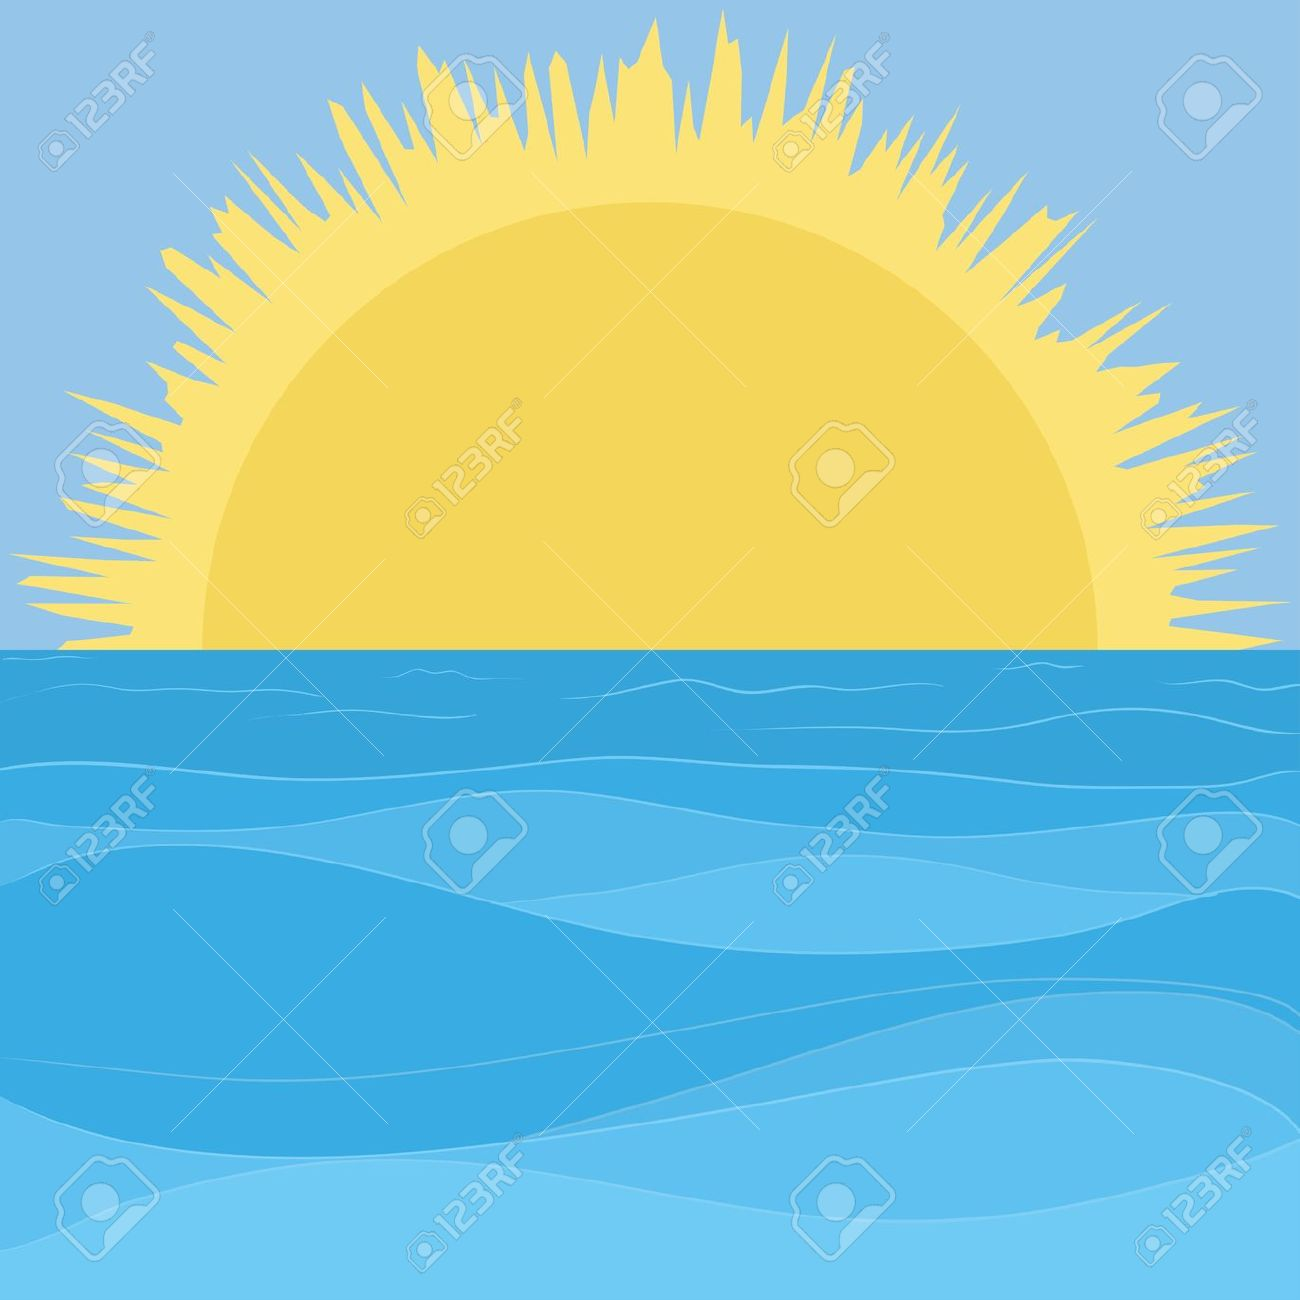 Blue sky ocean background free clipart.